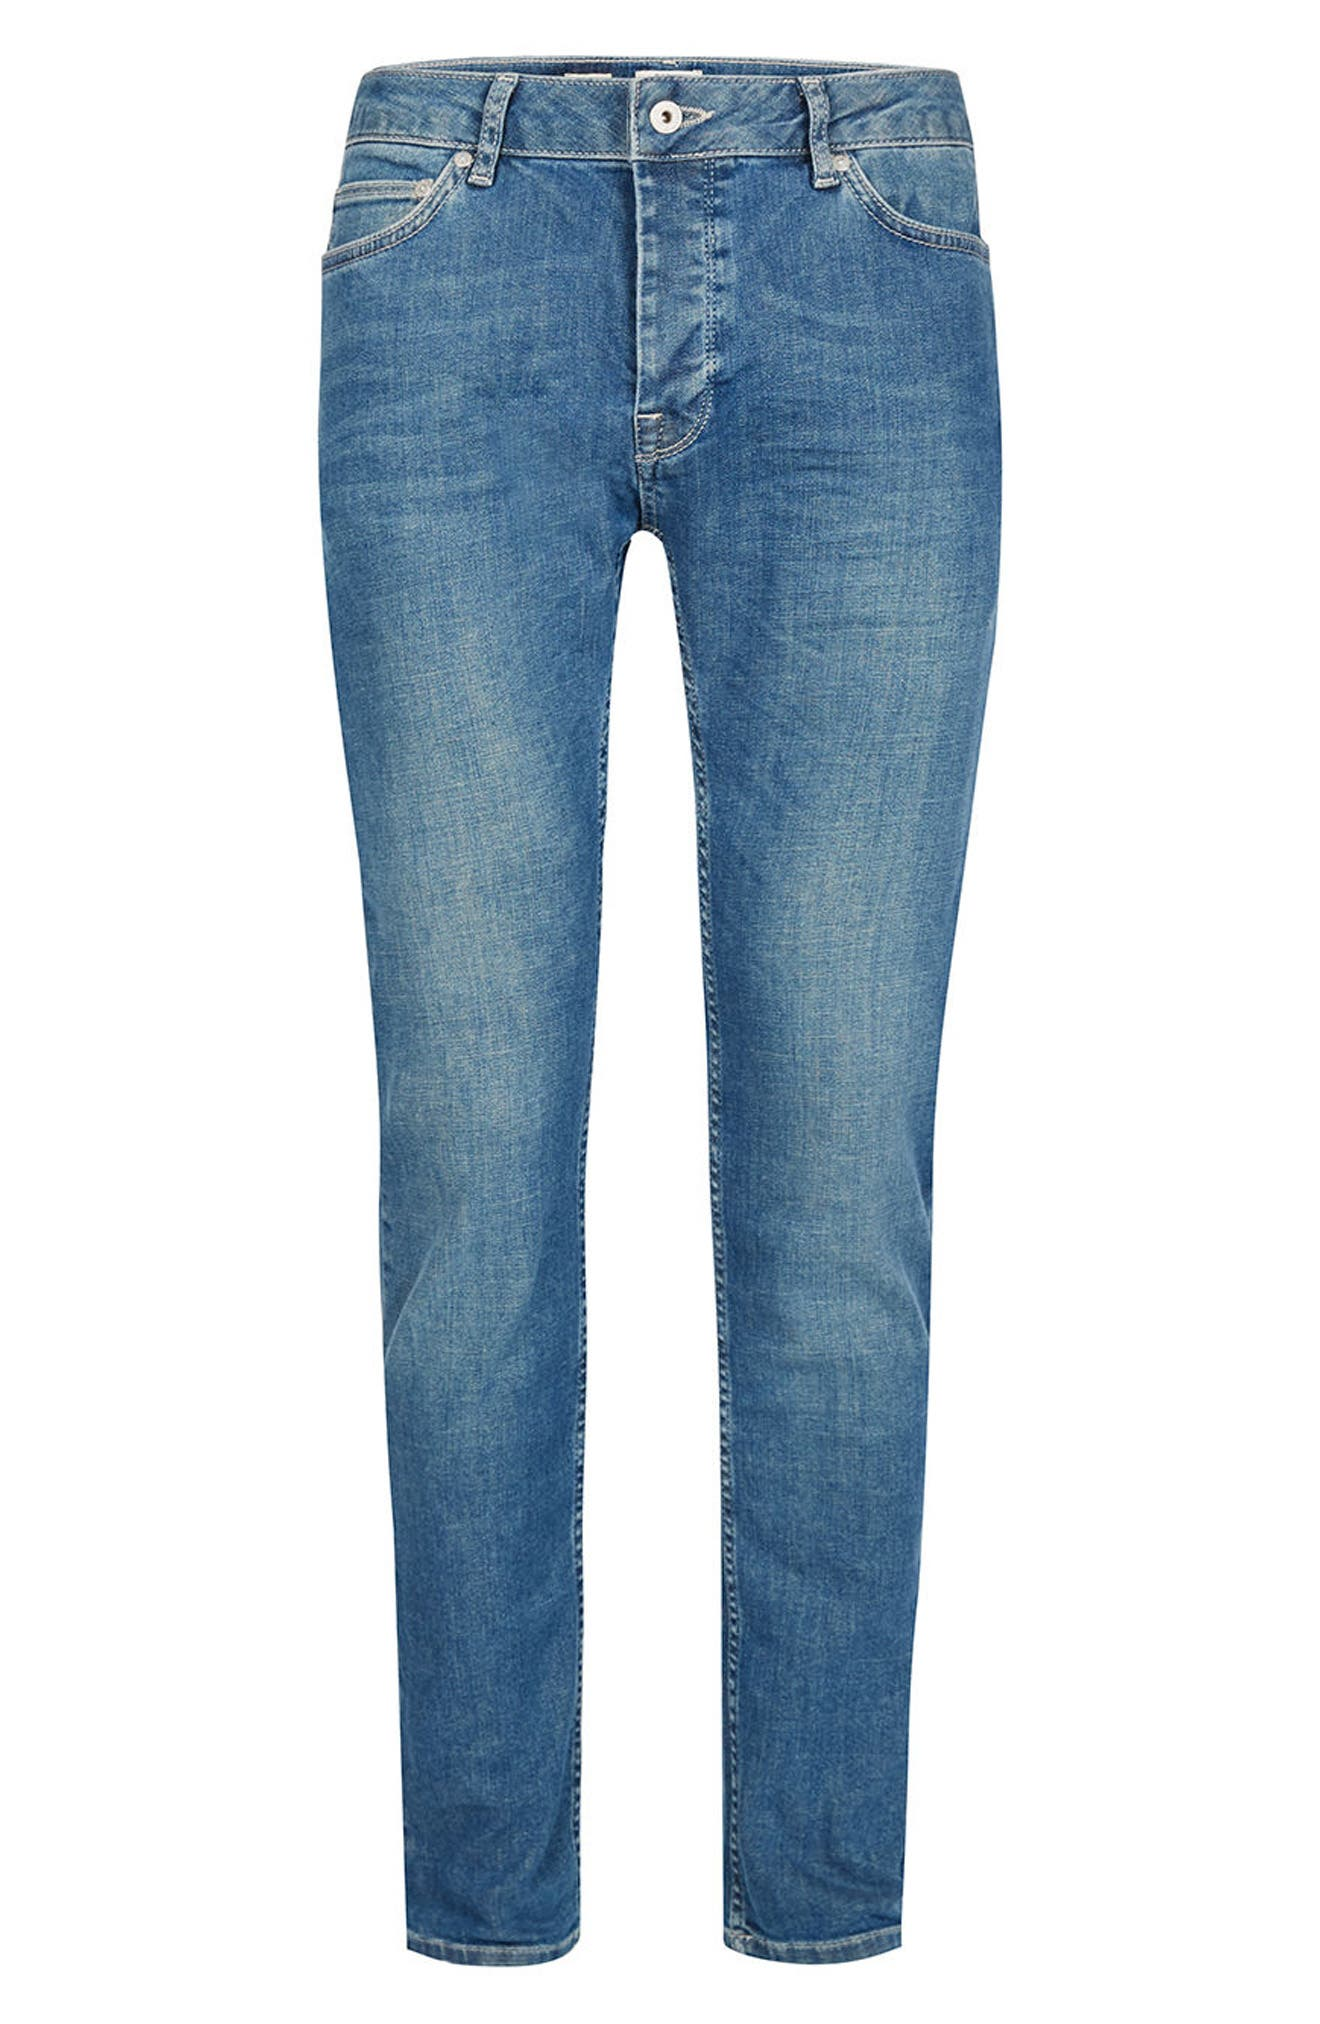 Stretch Skinny Fit Jeans,                             Alternate thumbnail 6, color,                             Mid Blue